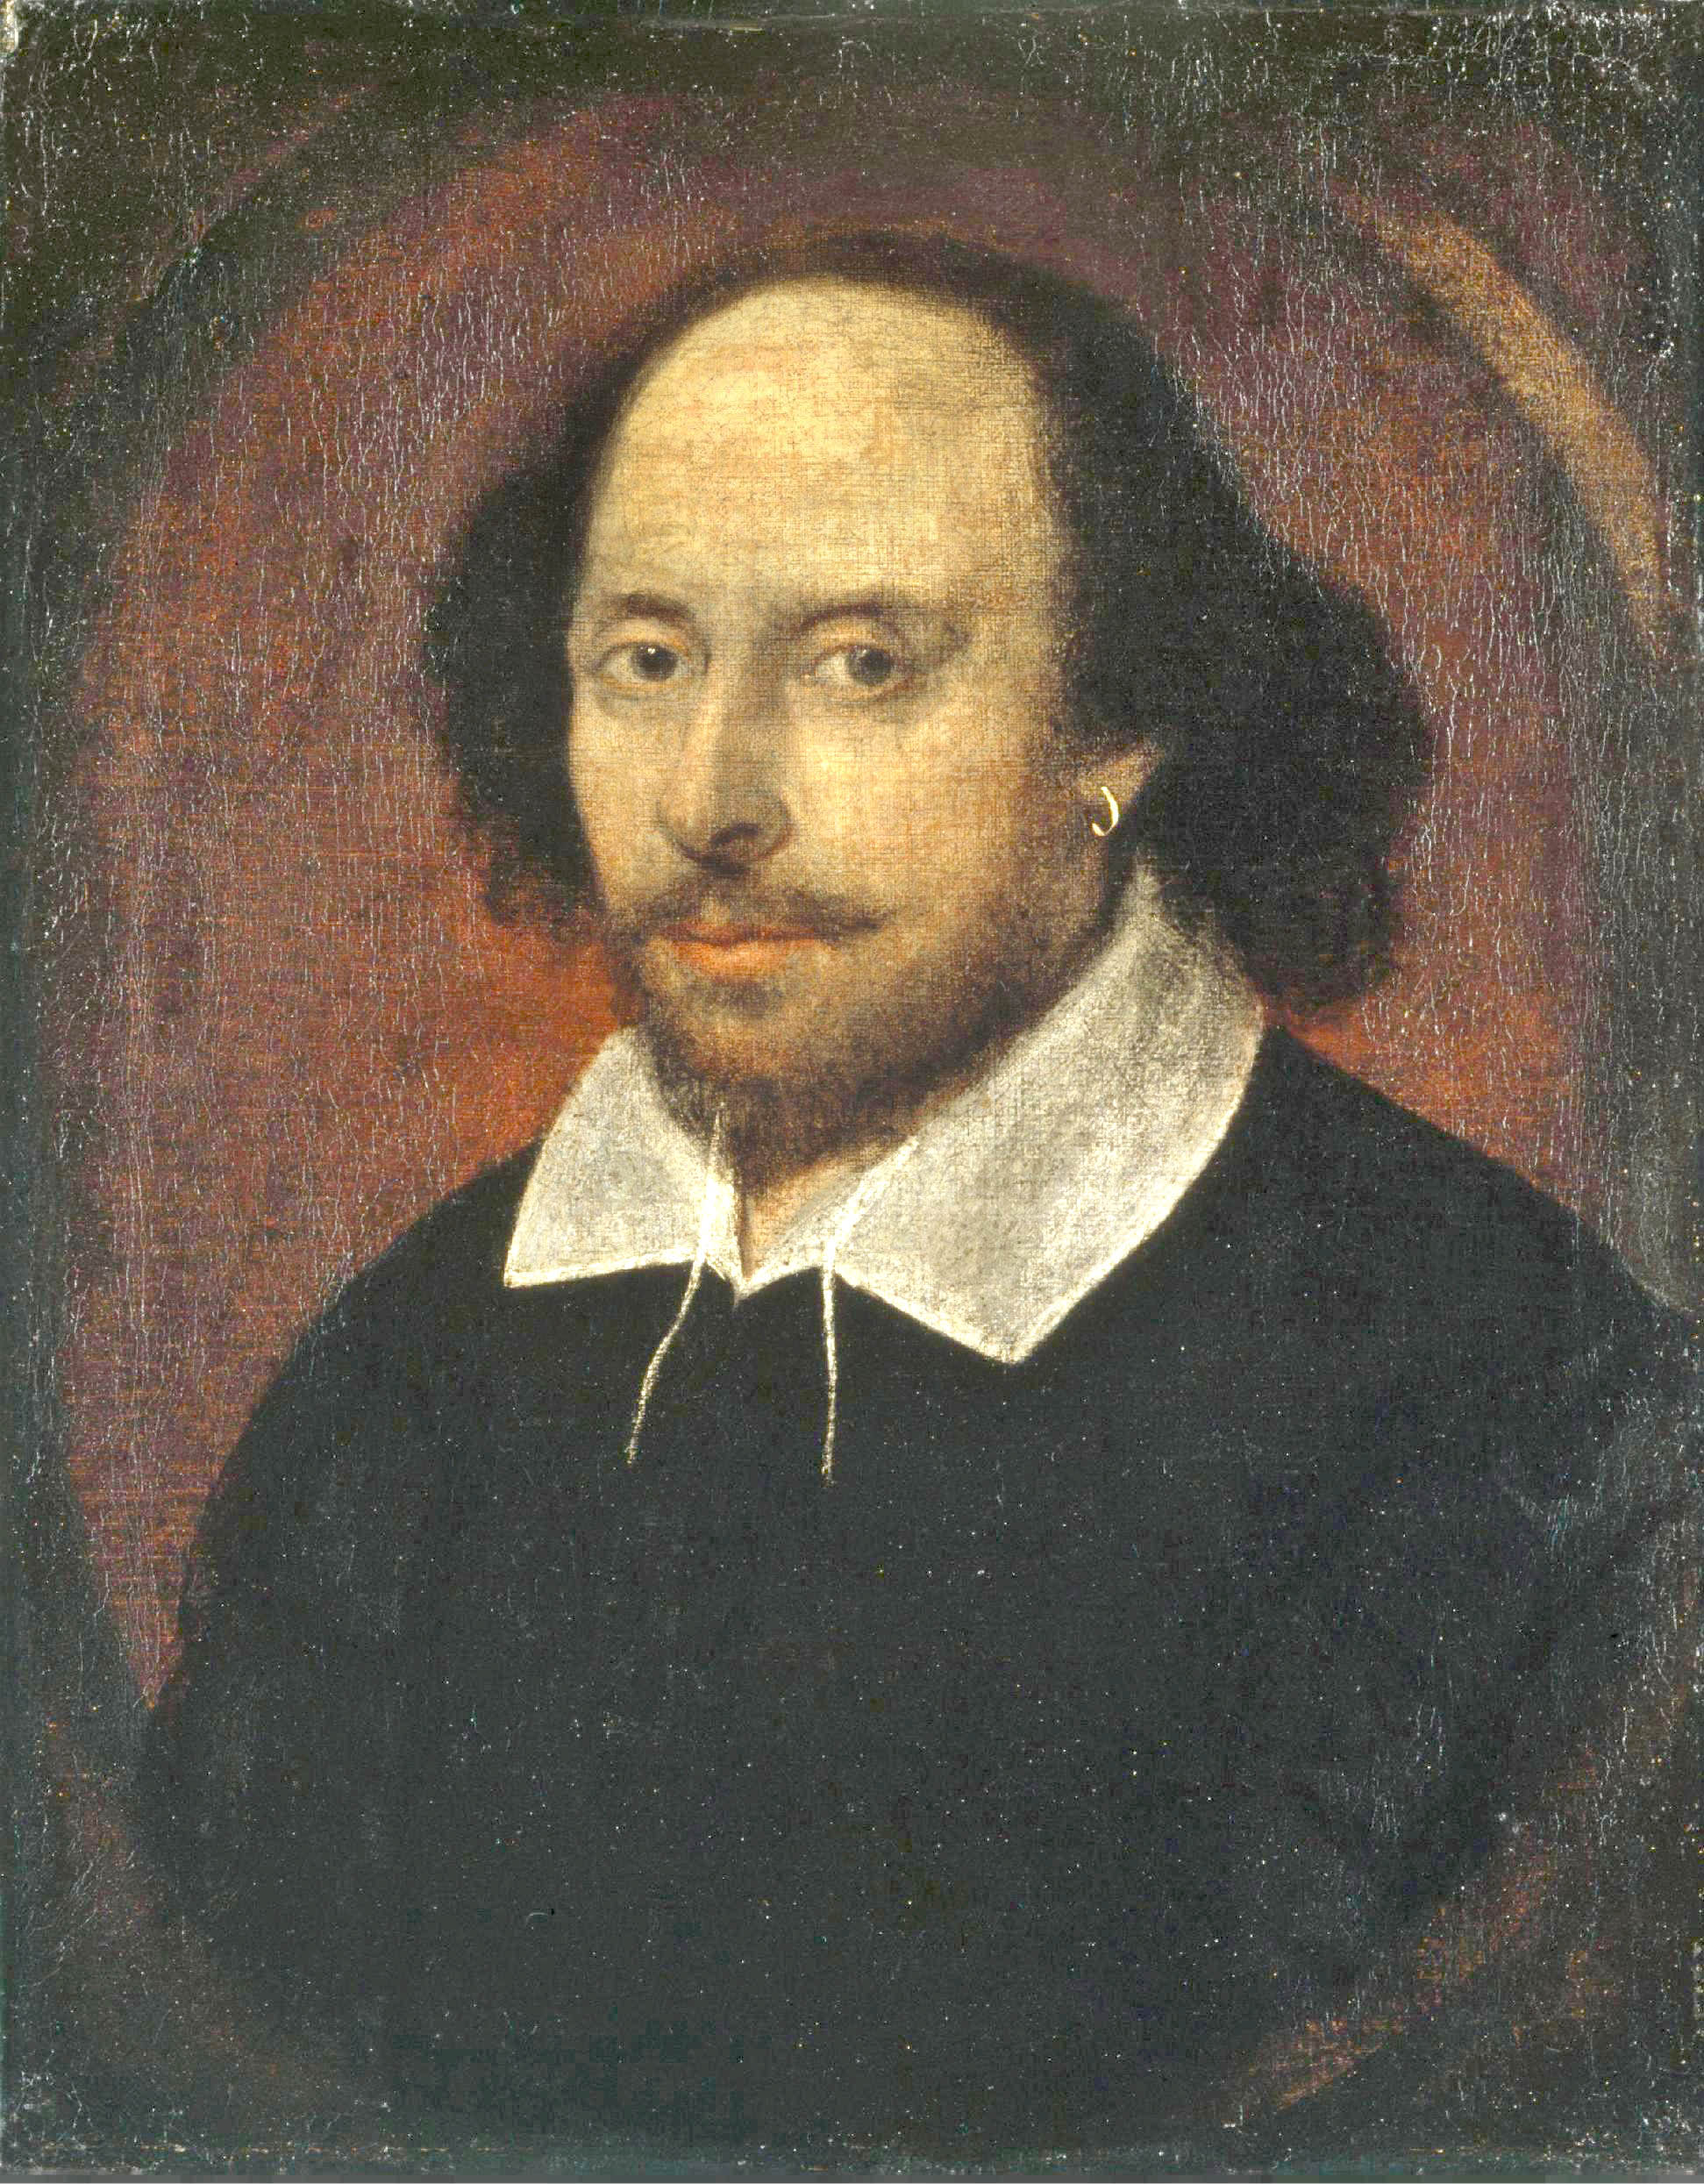 Shakespeare: Hoarder, Playwright, Fake? A Physicist Turns To Statistics For Answers